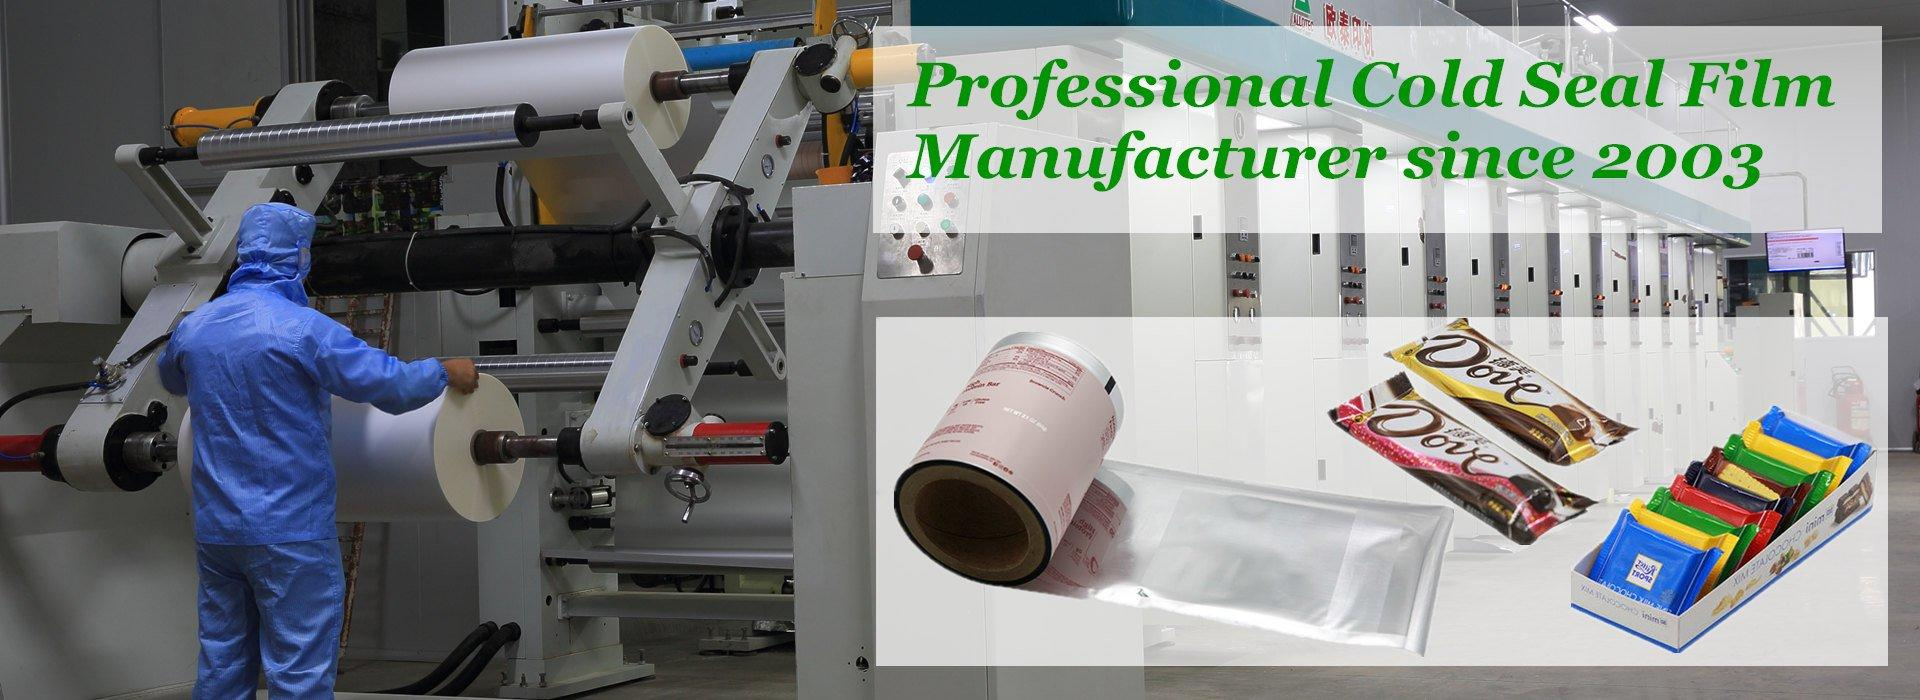 cold seal film Manufacturer